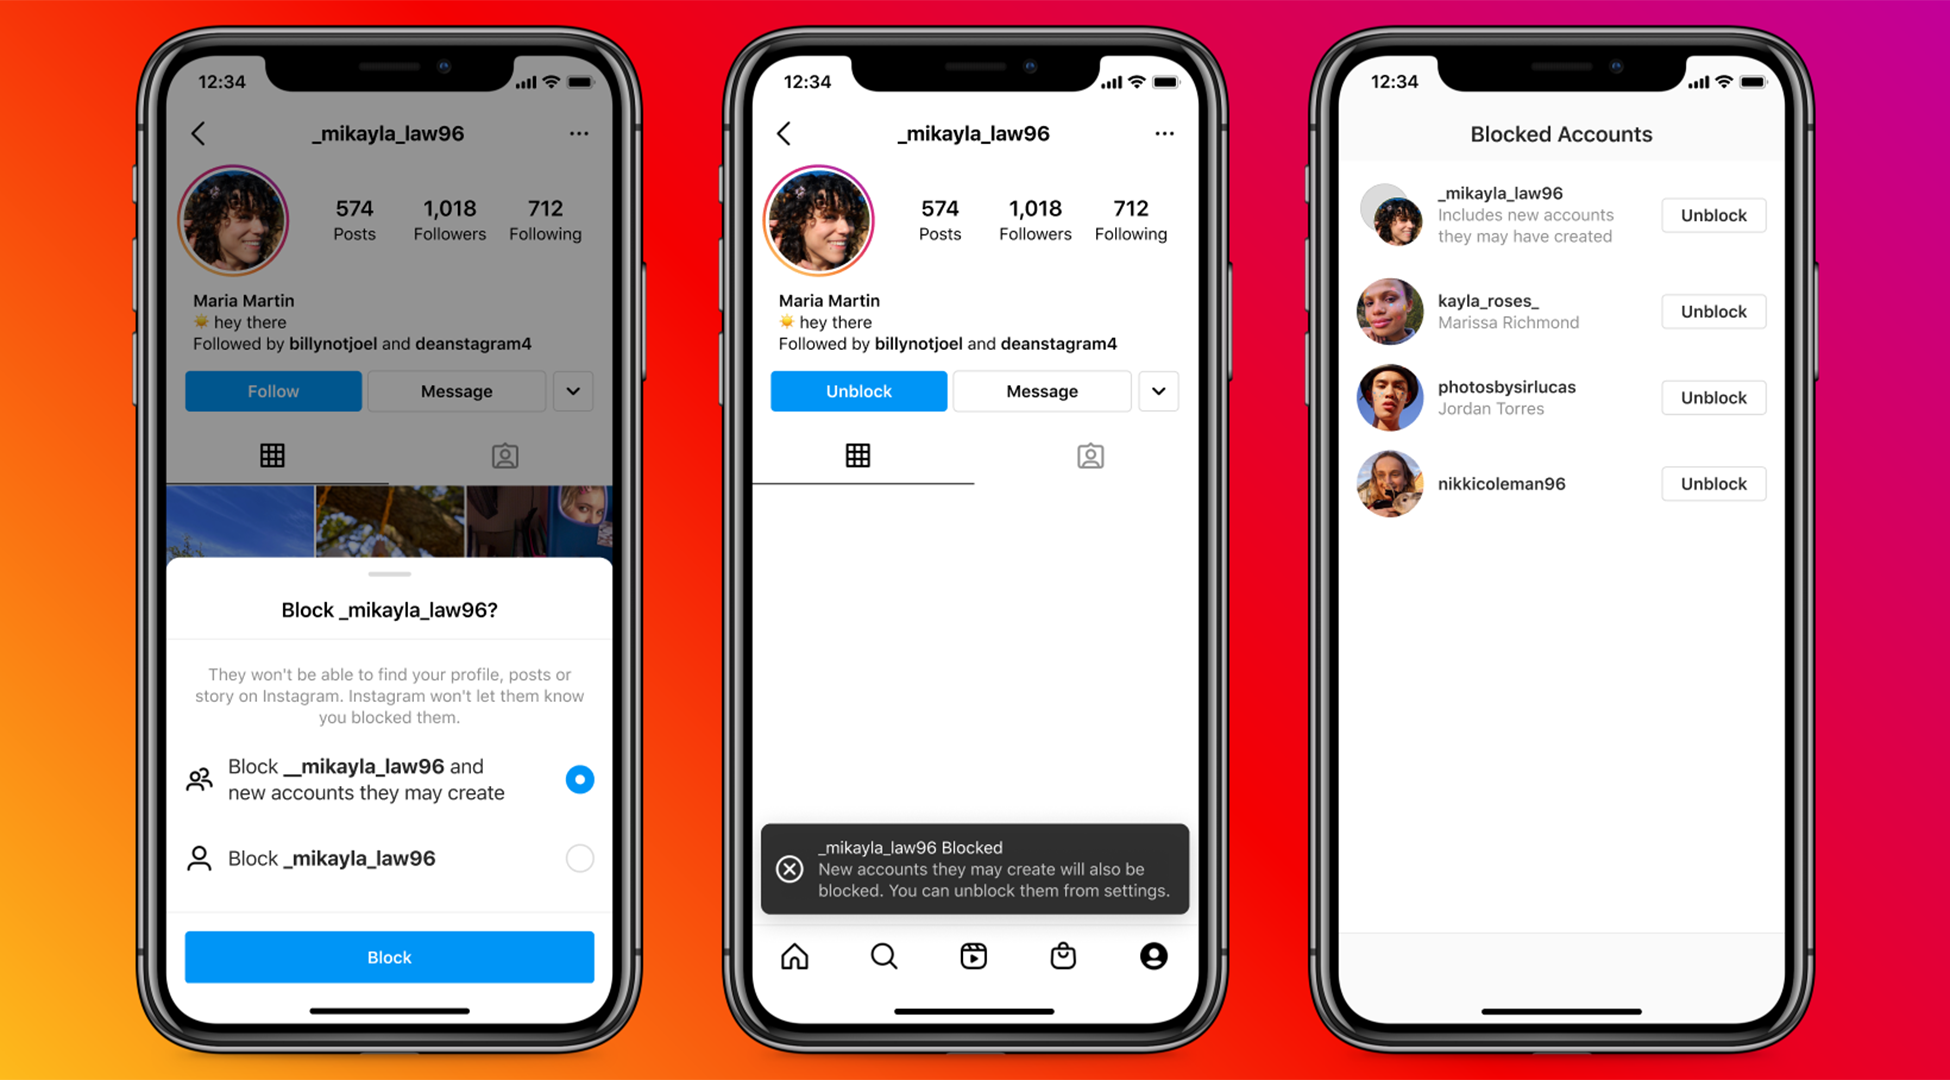 Instagram adds new anti-harassment tools to block abusive DMs